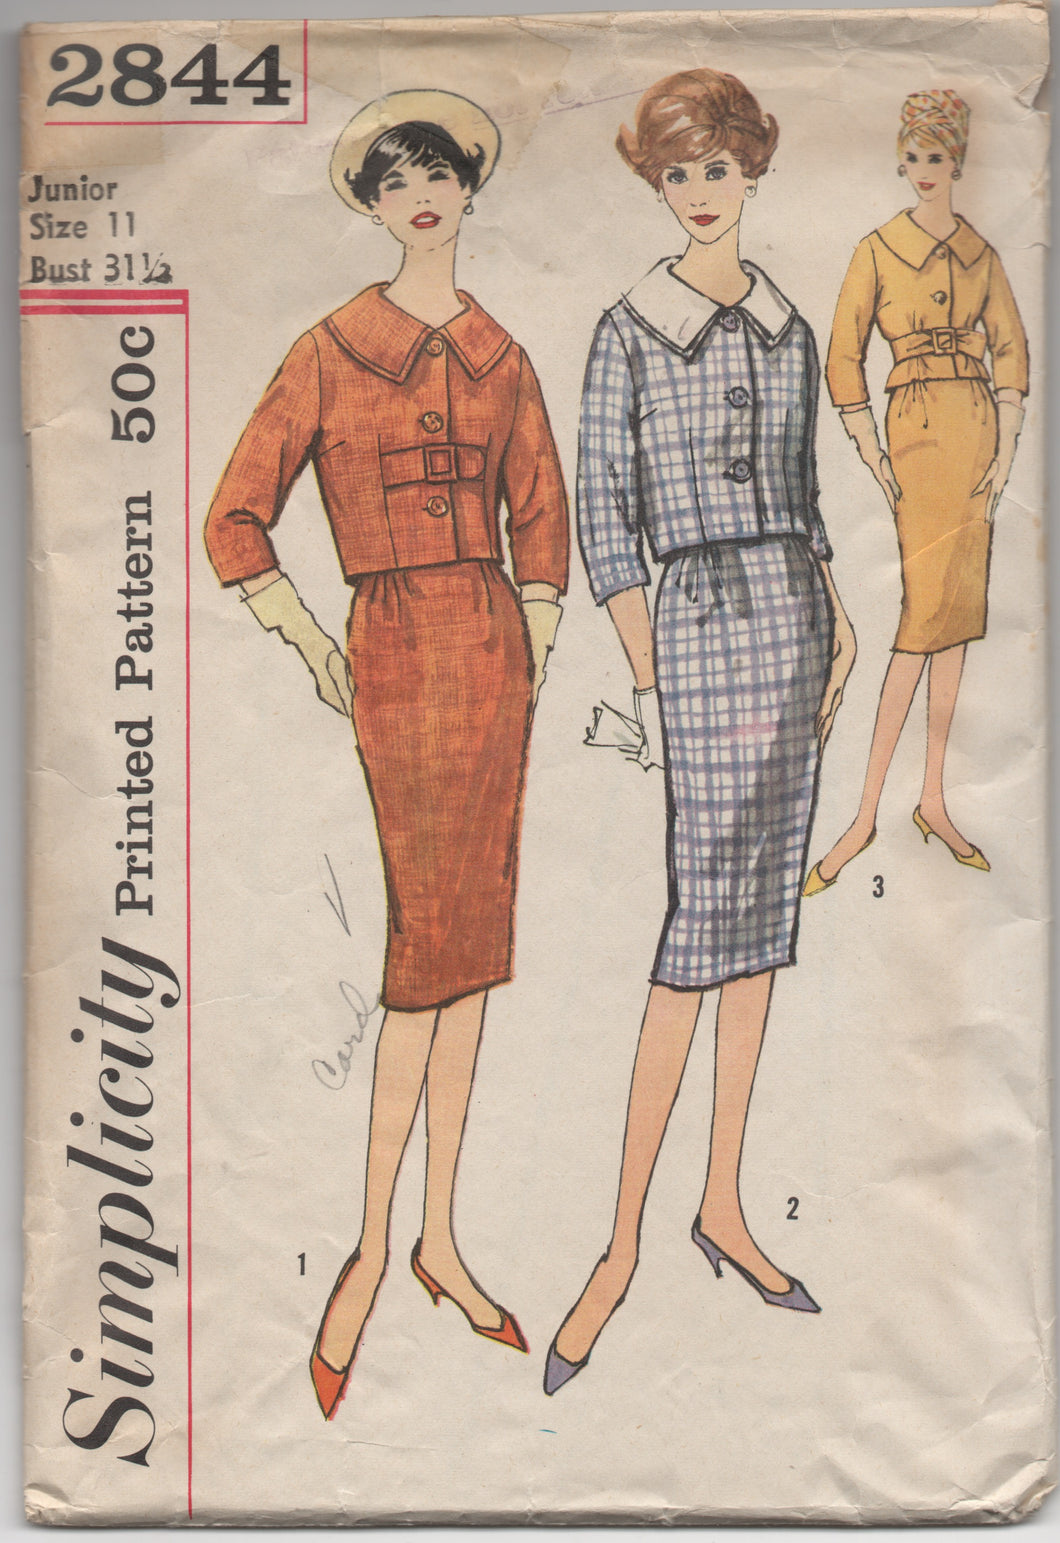 1950's Simplicity Two Piece Suit with Detachable Collar & Slim Skirt Pattern - Bust 31.5